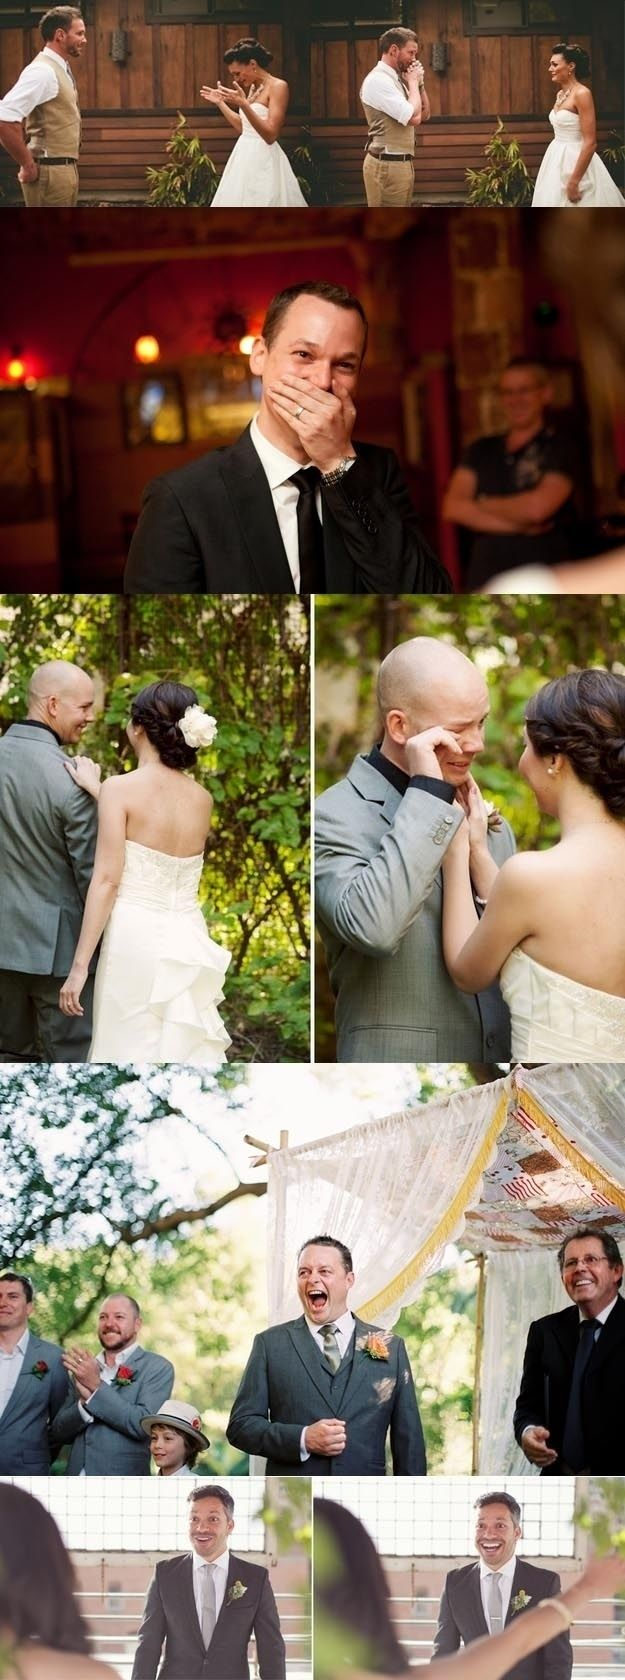 These photos of grooms seeing their brides for the first time: | 25 Pictures That Will Make You Believe In True Love